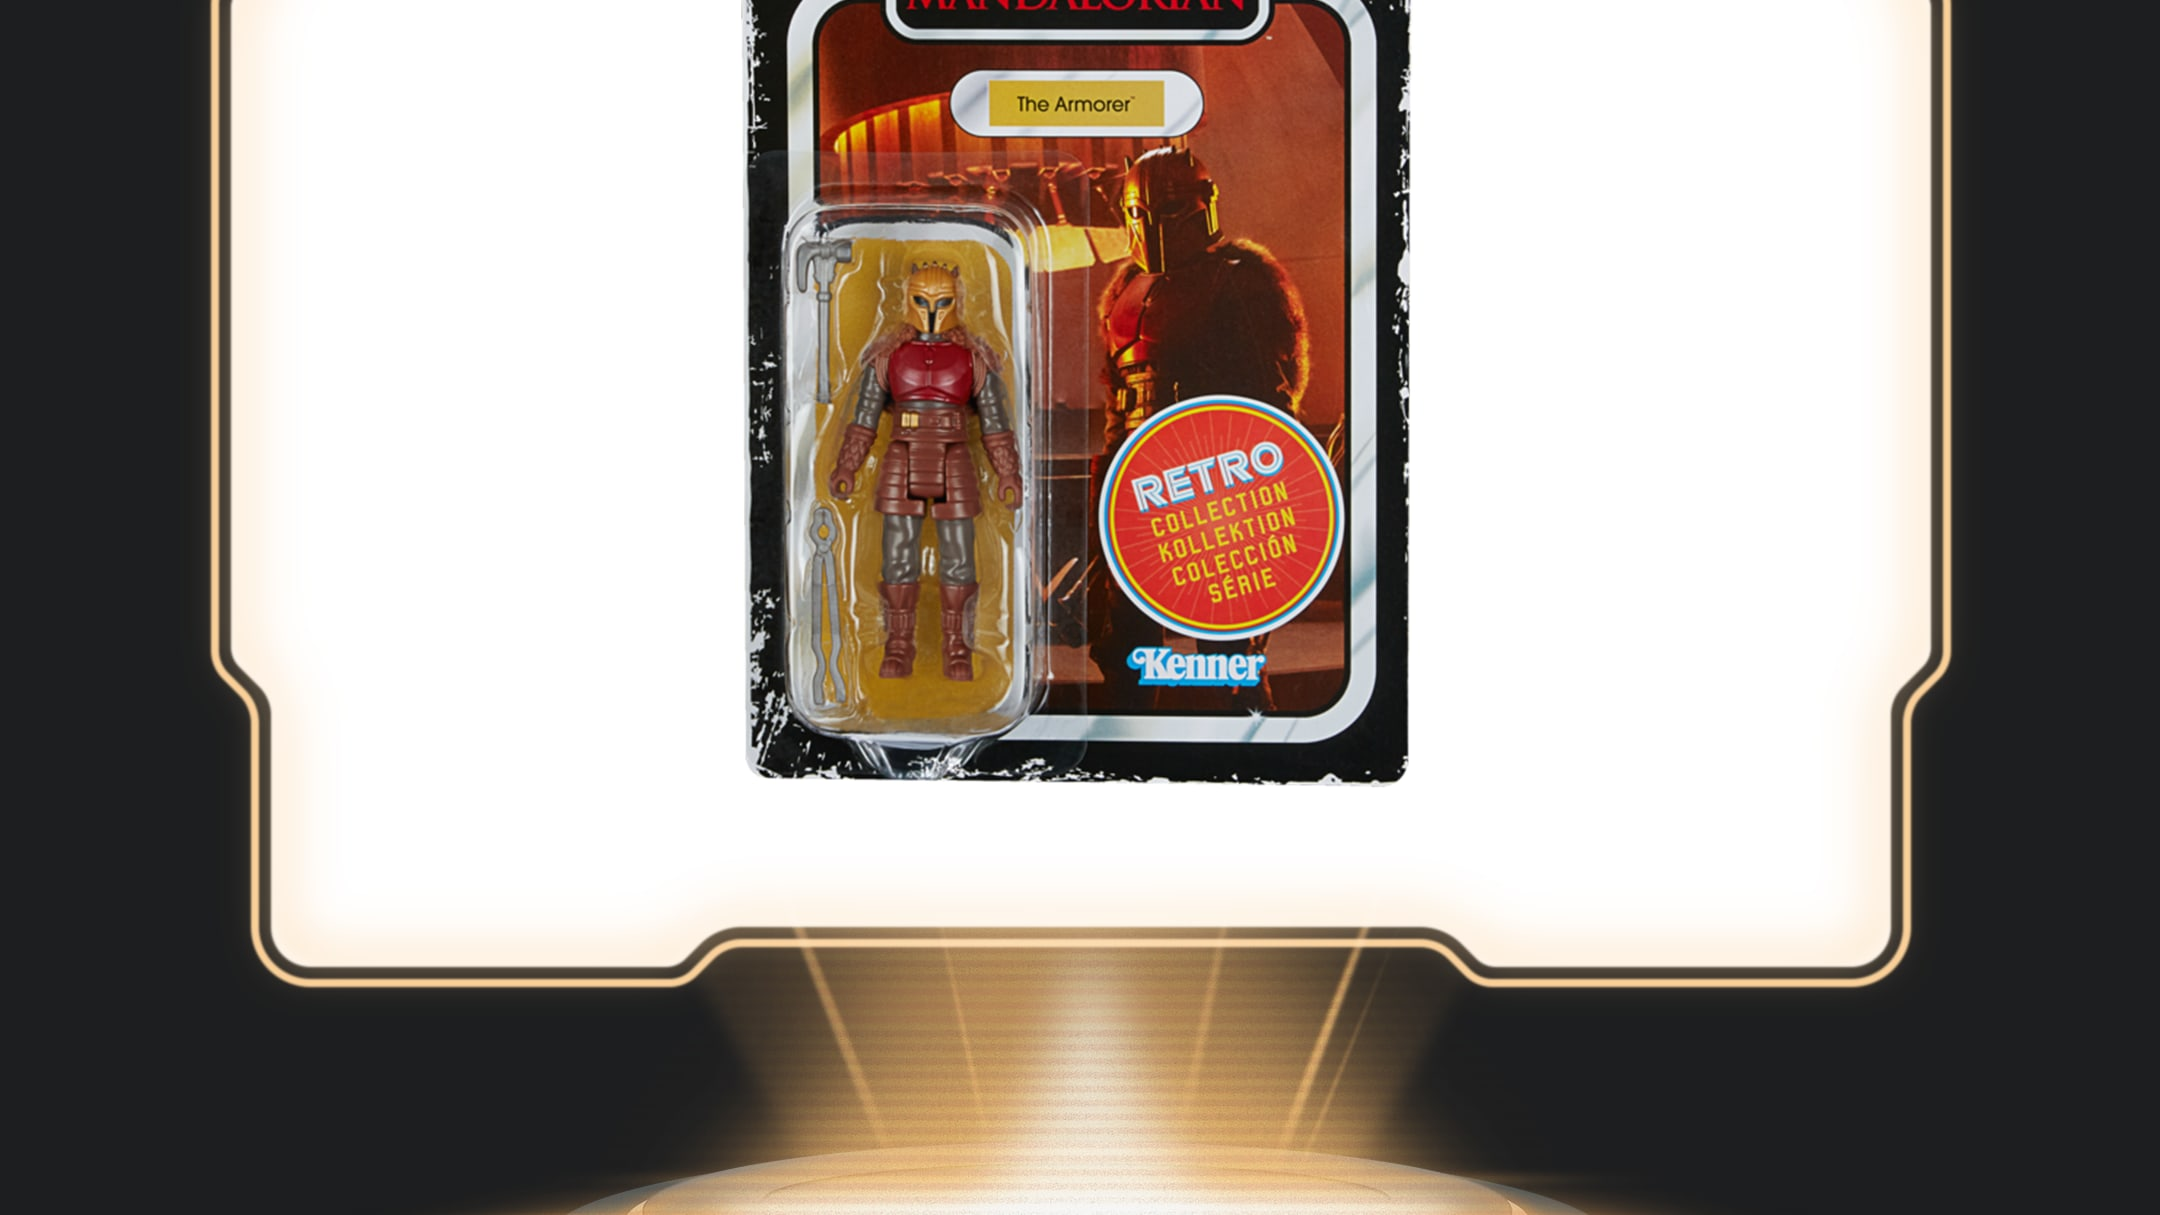 Hasbro - Star Wars: The Retro Collection 3.75-inch The Armorer Figure